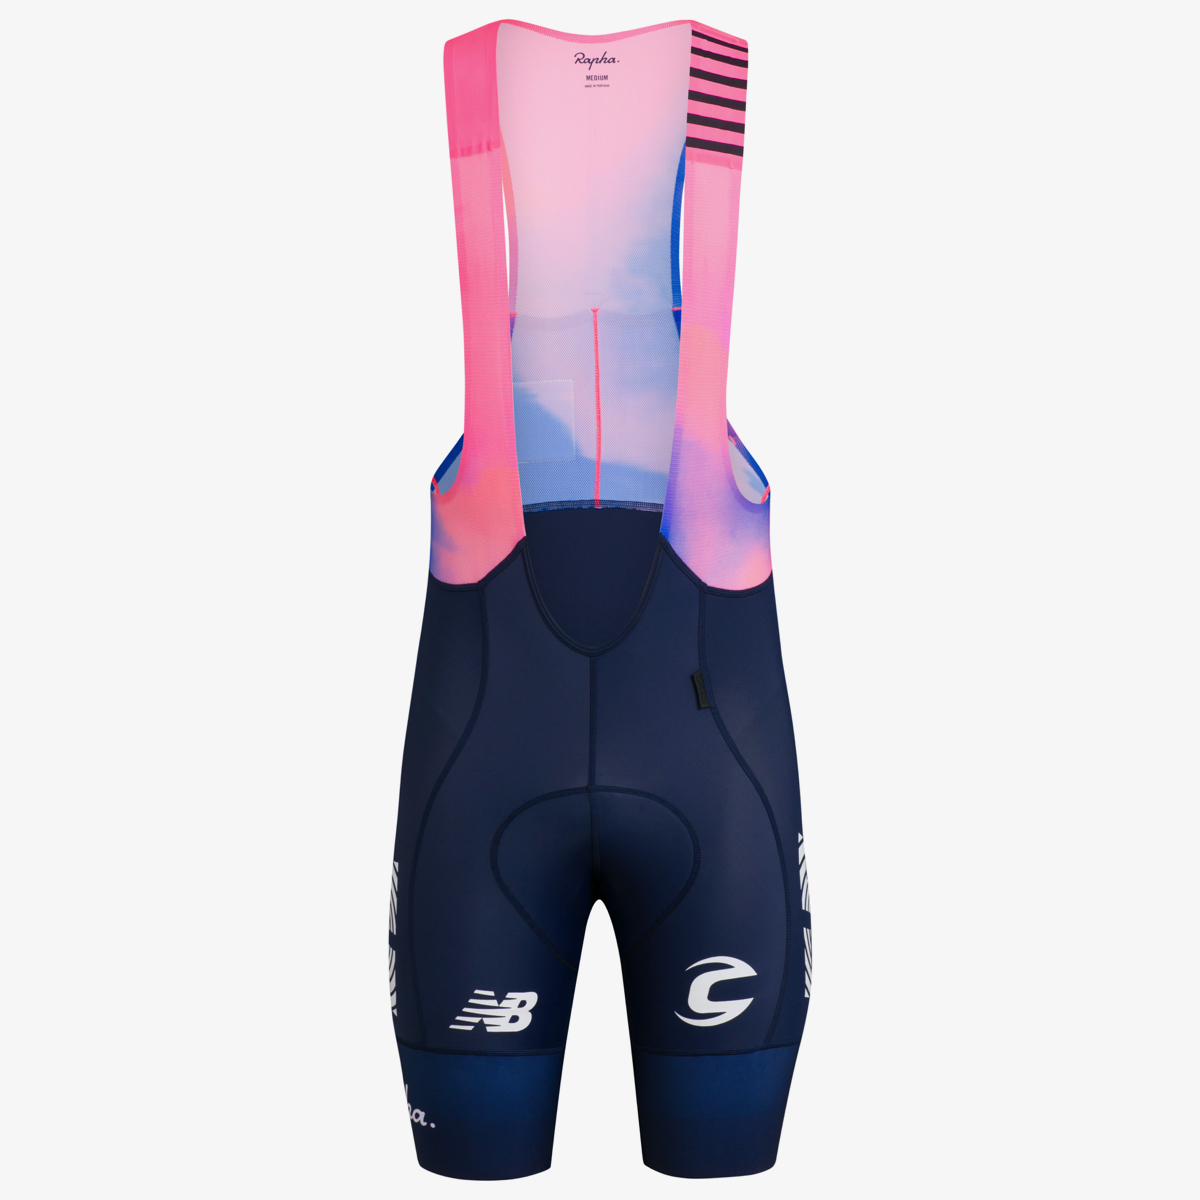 Rapha EF EDUCATION FIRST PRO TEAM BIB SHORTS II - REG